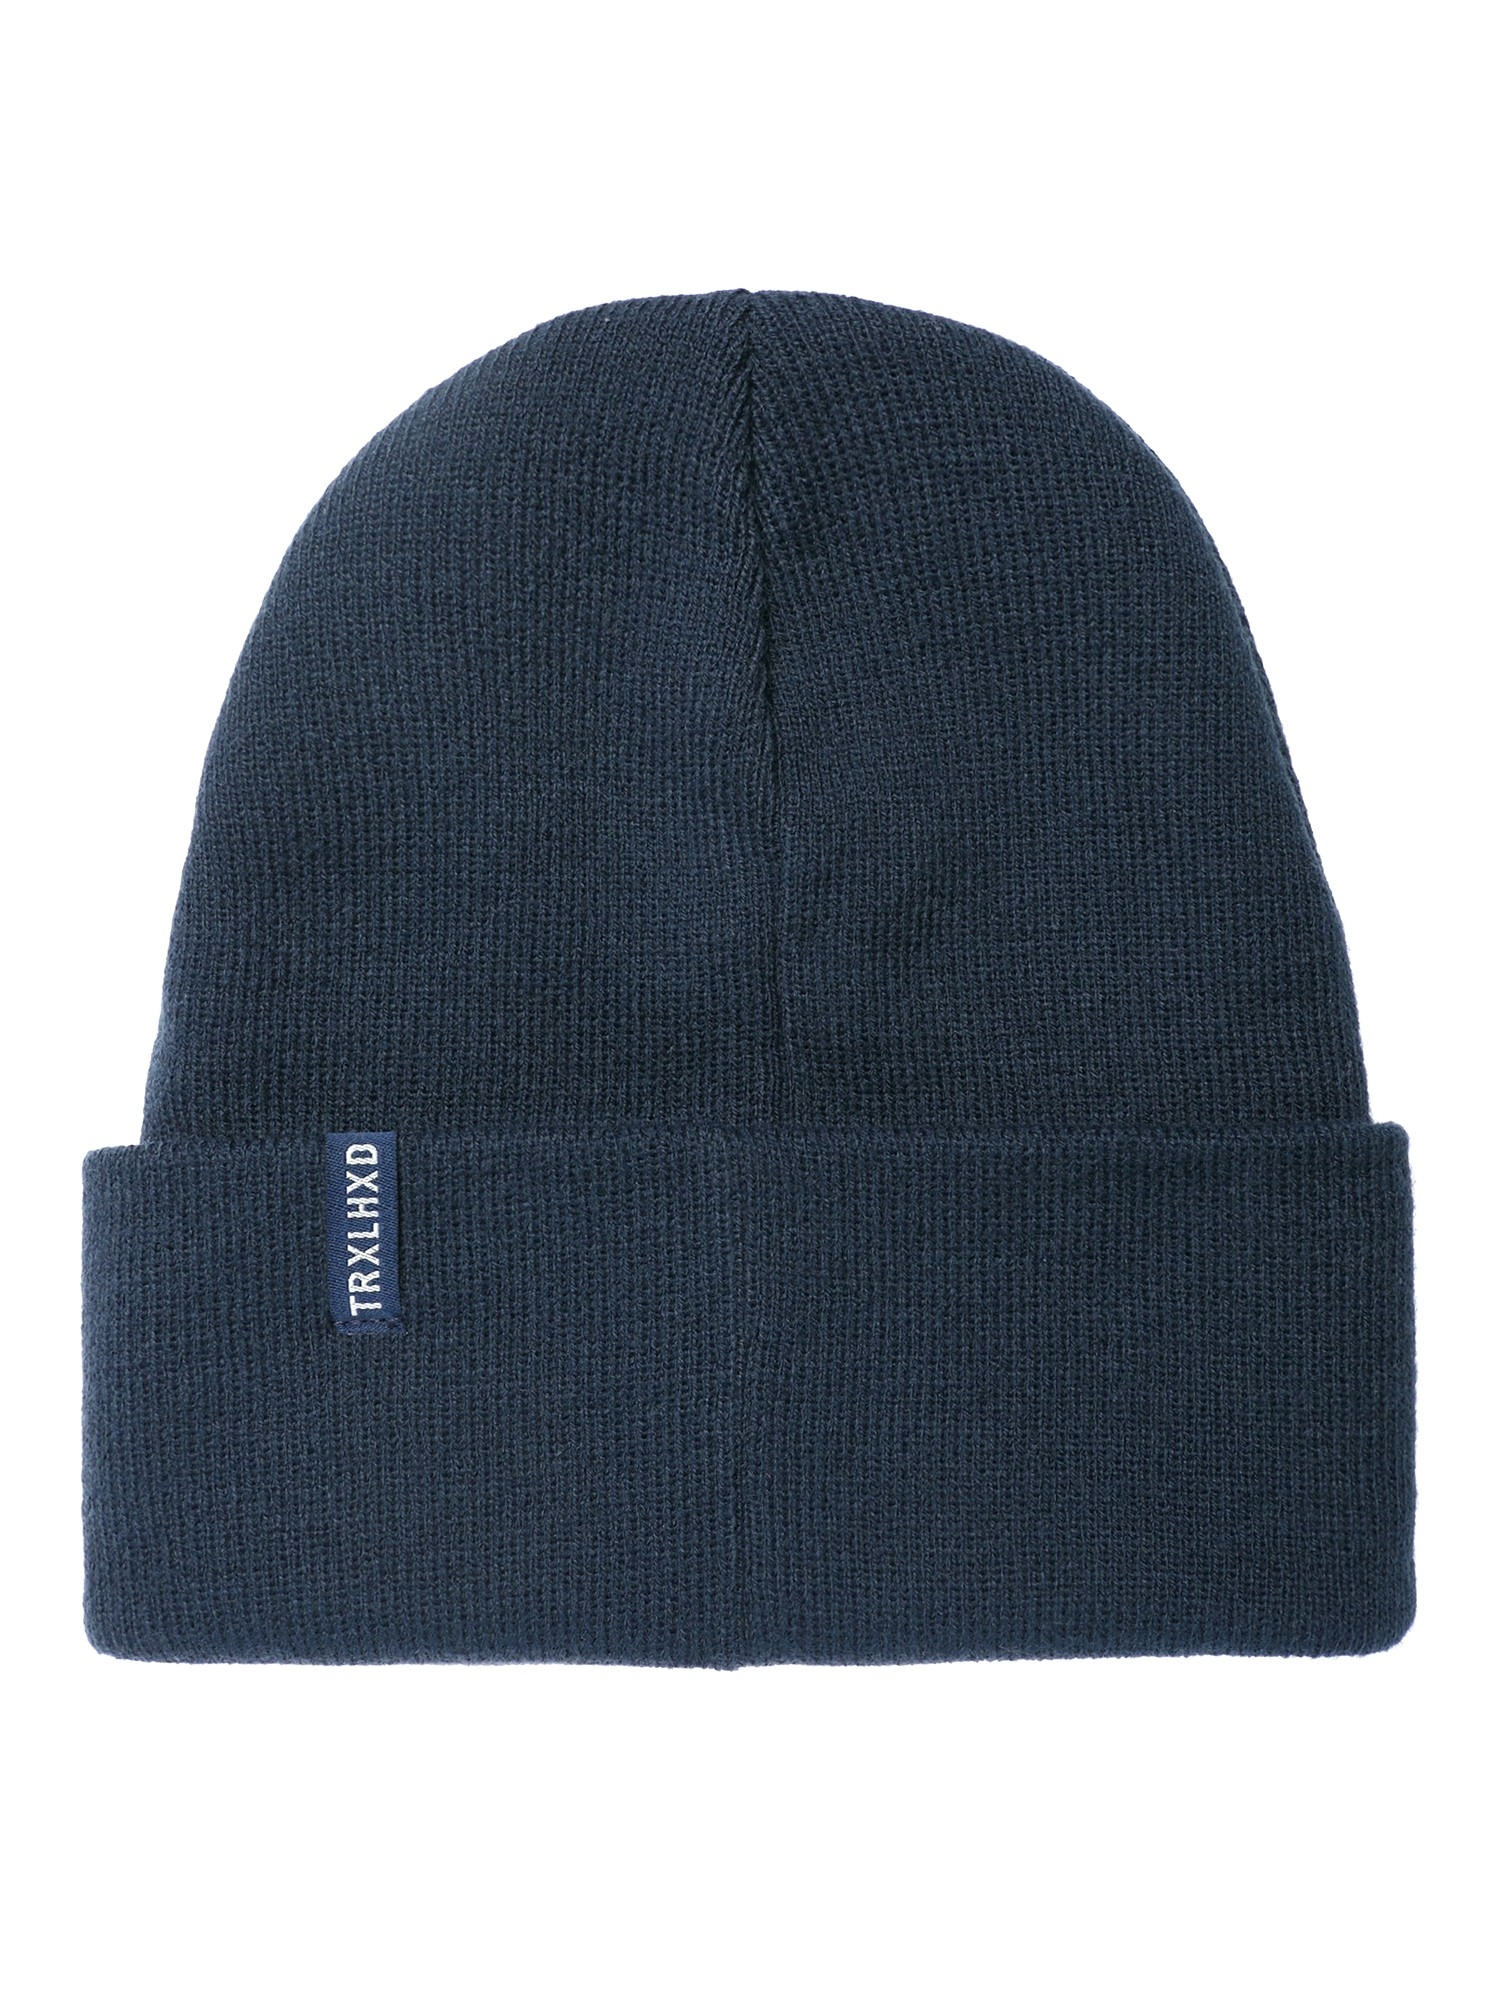 Шапка TRAILHEAD HAT19-PTH-SHIP18-NV, HAT19-PTH-SHIP18, фото 3